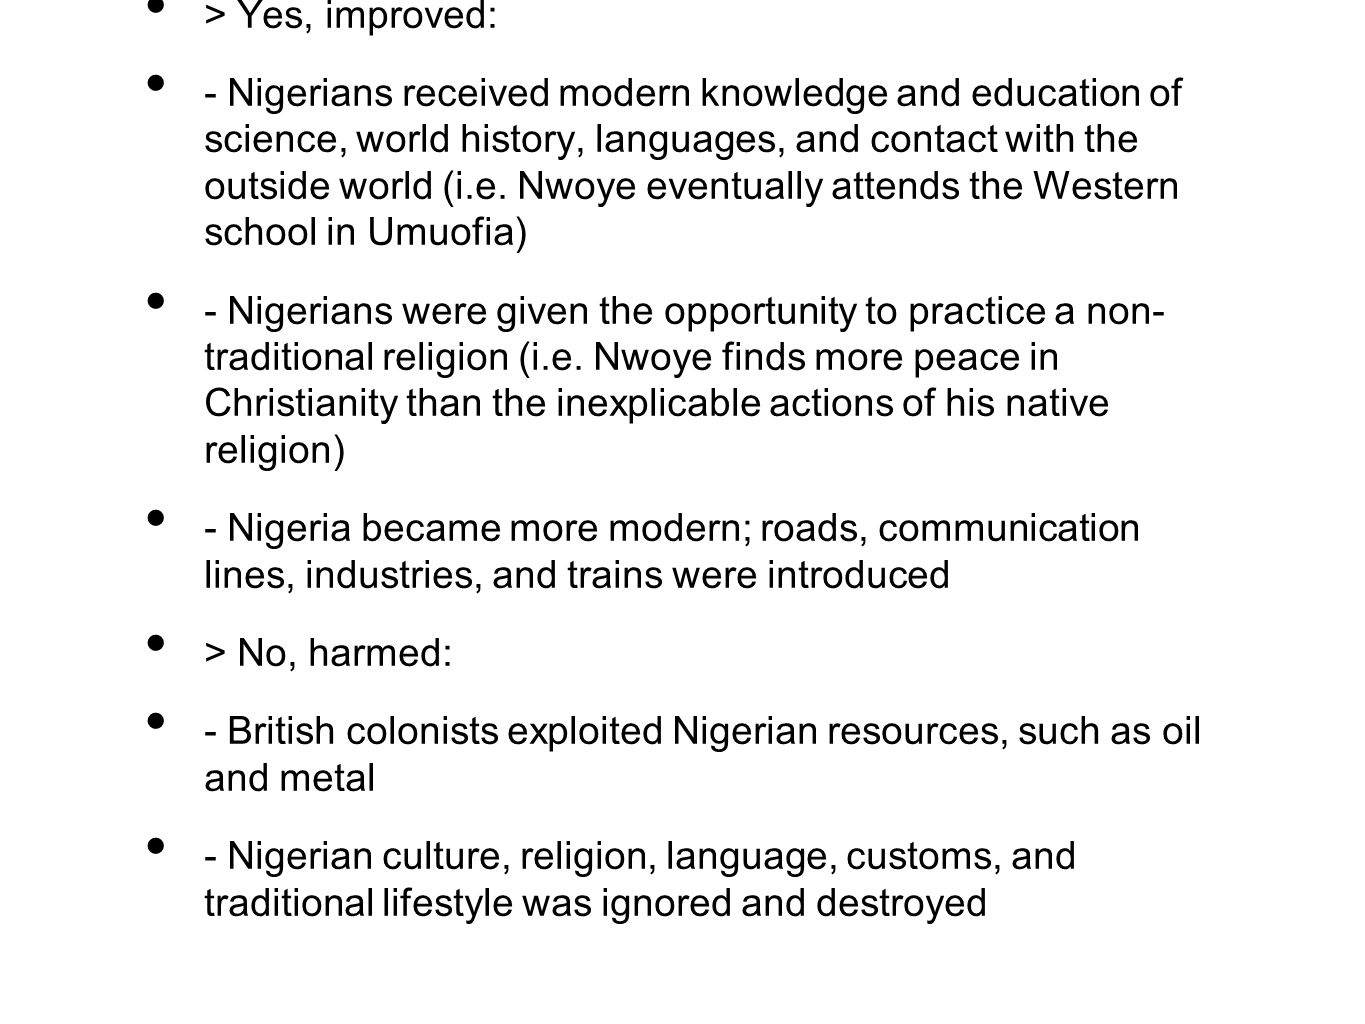 > Yes, improved: - Nigerians received modern knowledge and education of science, world history, languages, and contact with the outside world (i.e. Nw